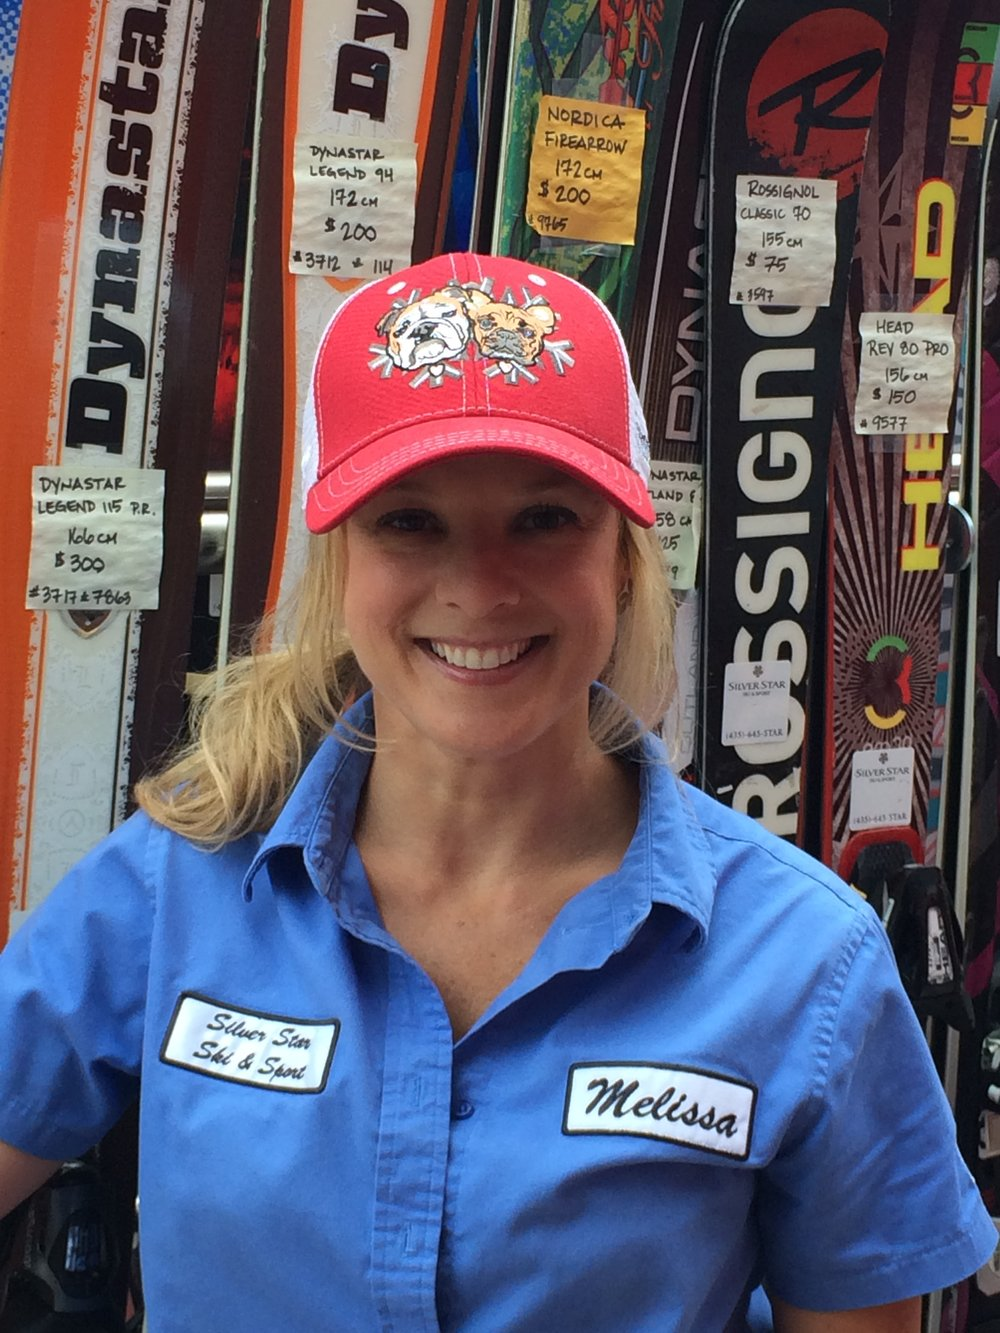 Melissa - Sales Associate - Melissa has been with Silver Star Ski & Sport since fall of 2013.  Her and her husband hail from Tennessee but their love for the mountains called them out west.  Her southern charm is infectious!